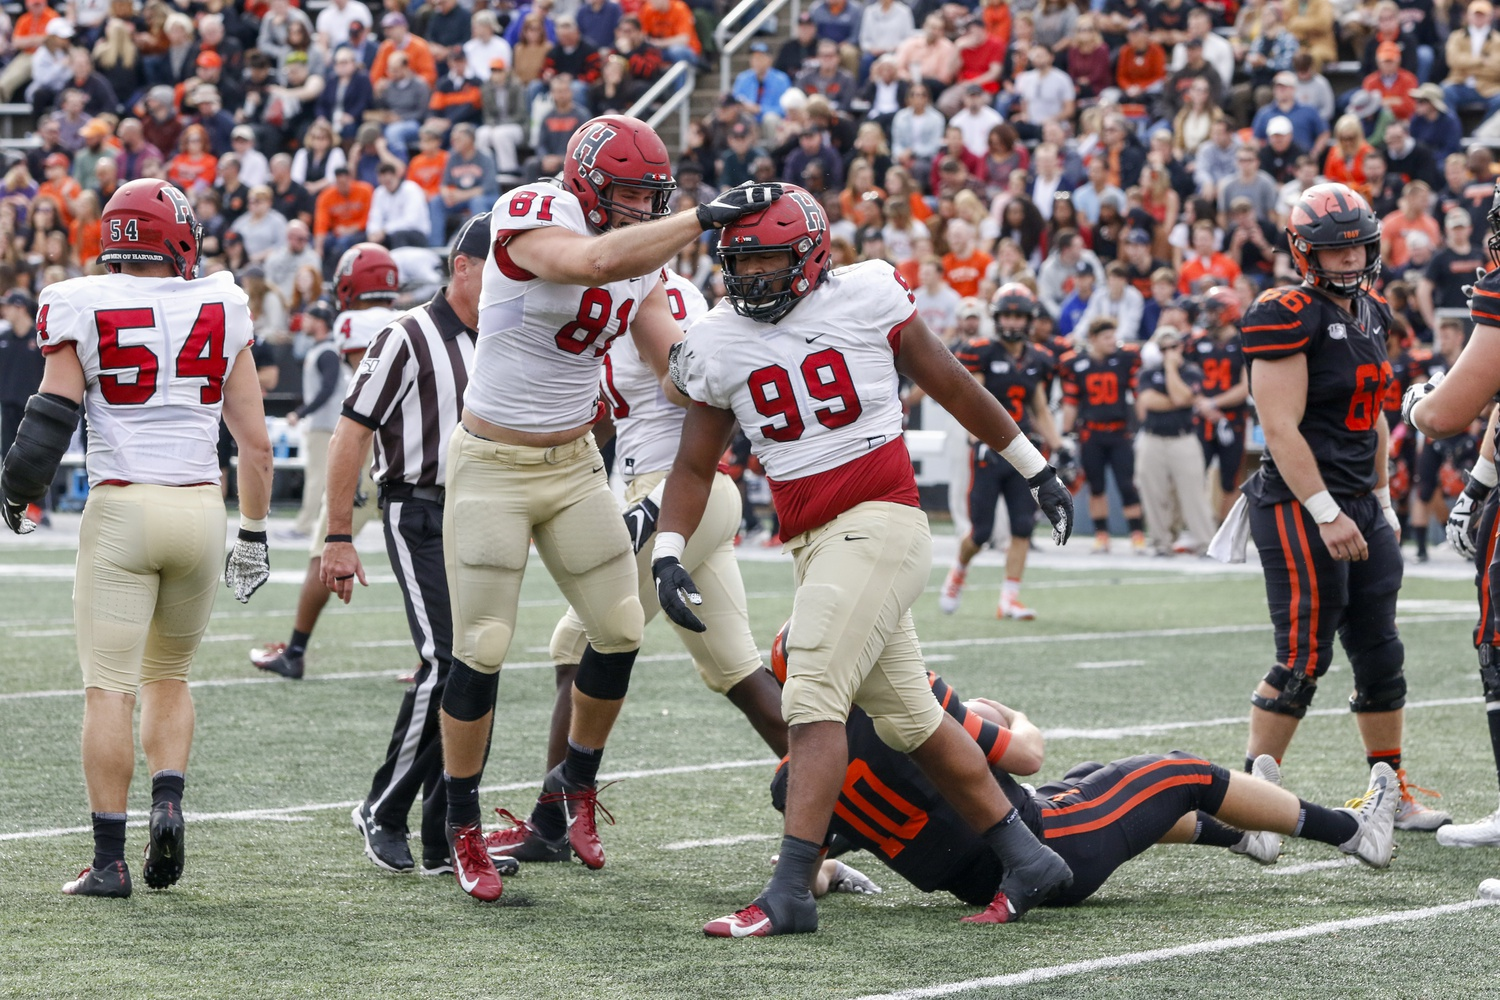 Harvard defensive lineman Jacob Sykes receives a congratulatory pat on the head from a teammate after a sack during Saturday's loss to Princeton